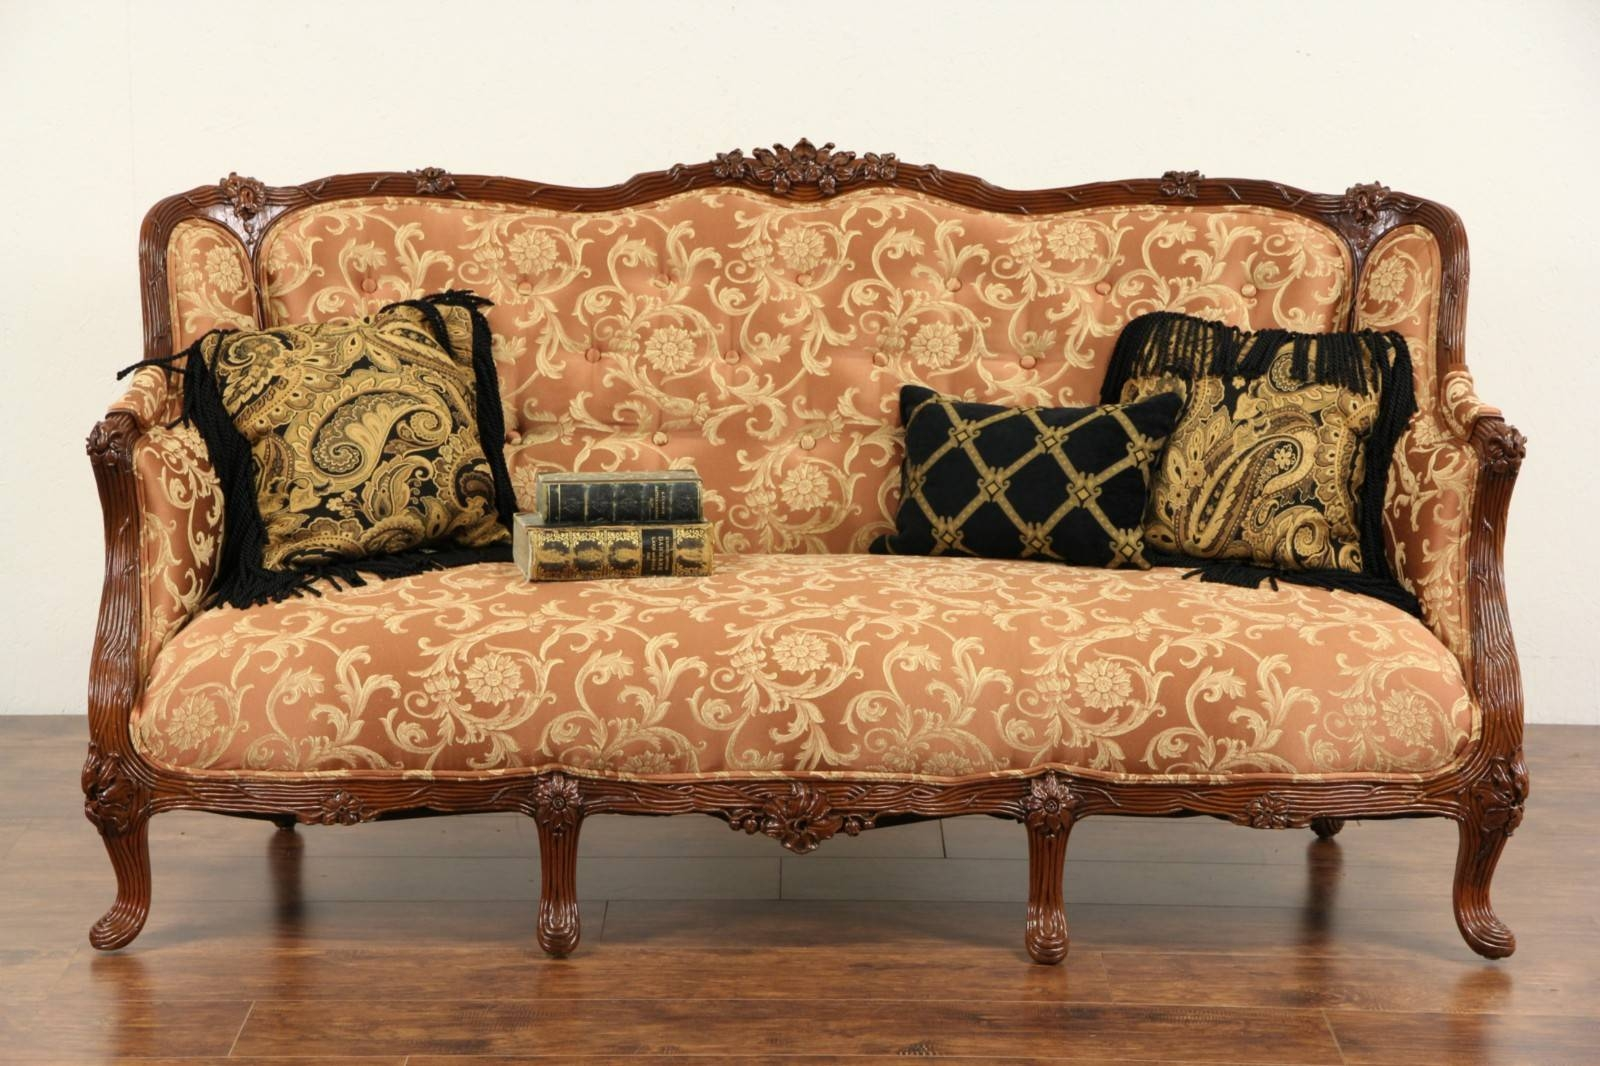 Sold - French Style 1930's Carved Vintage Sofa, New Upholstery throughout 1930S Couch (Image 26 of 30)